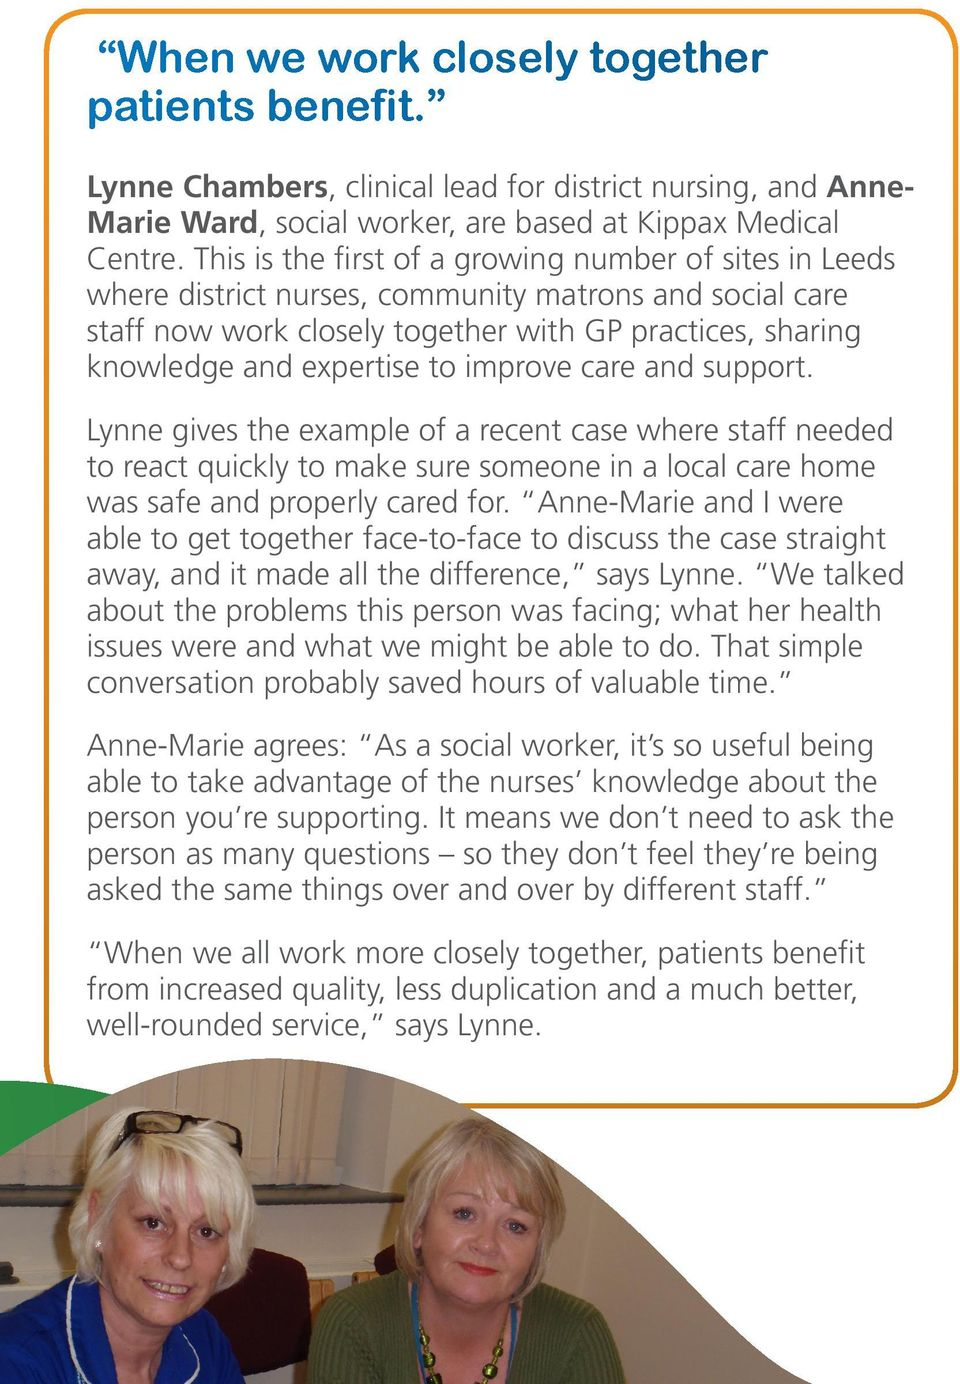 improve care and support. Lynne gives the example of a recent case where staff needed to react quickly to make sure someone in a local care home was safe and properly cared for.